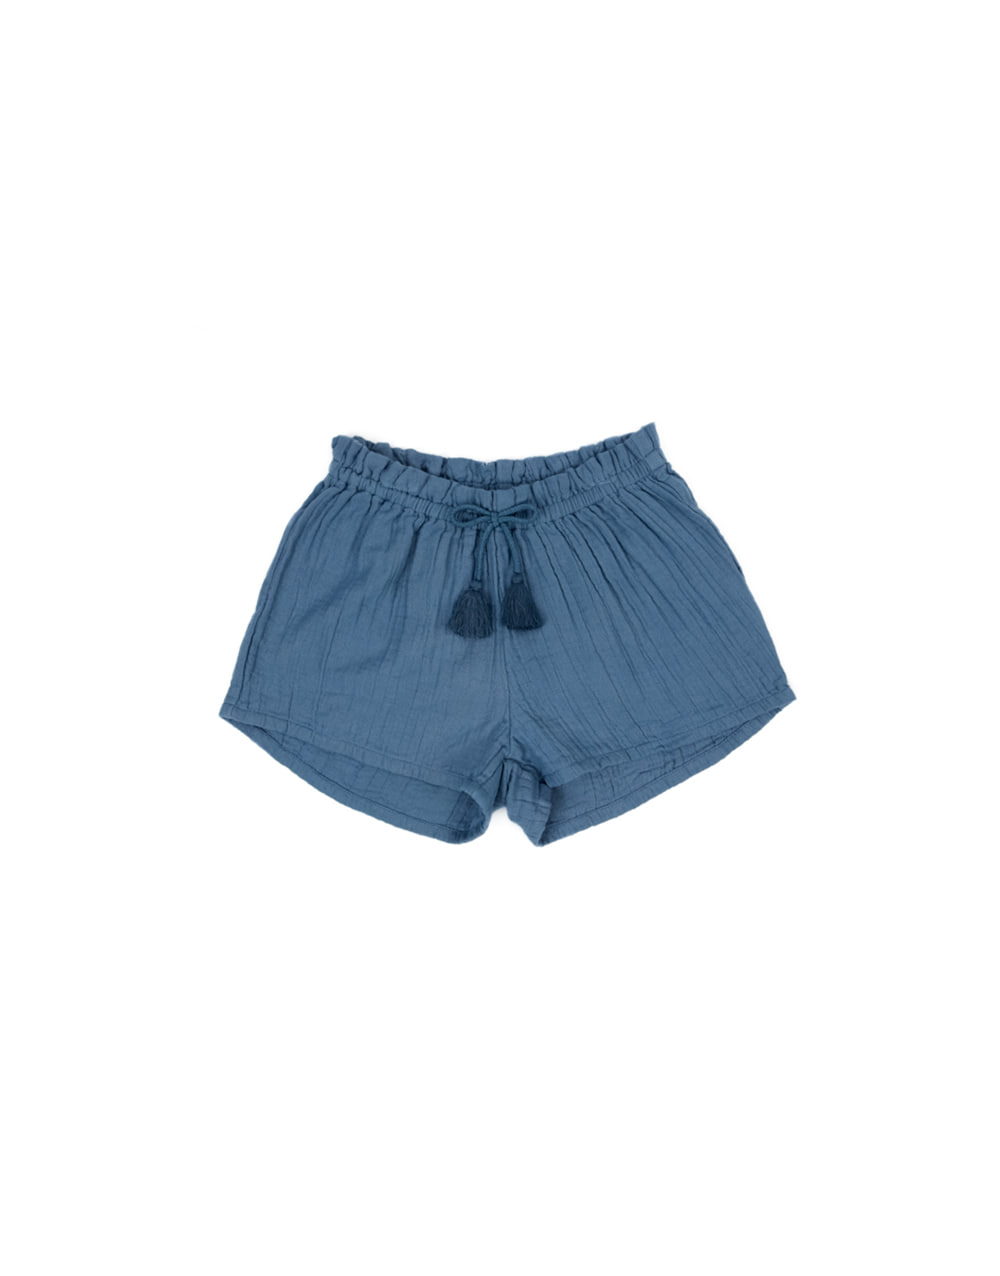 LILY BALOU  Nanou Shorts  Real Teal